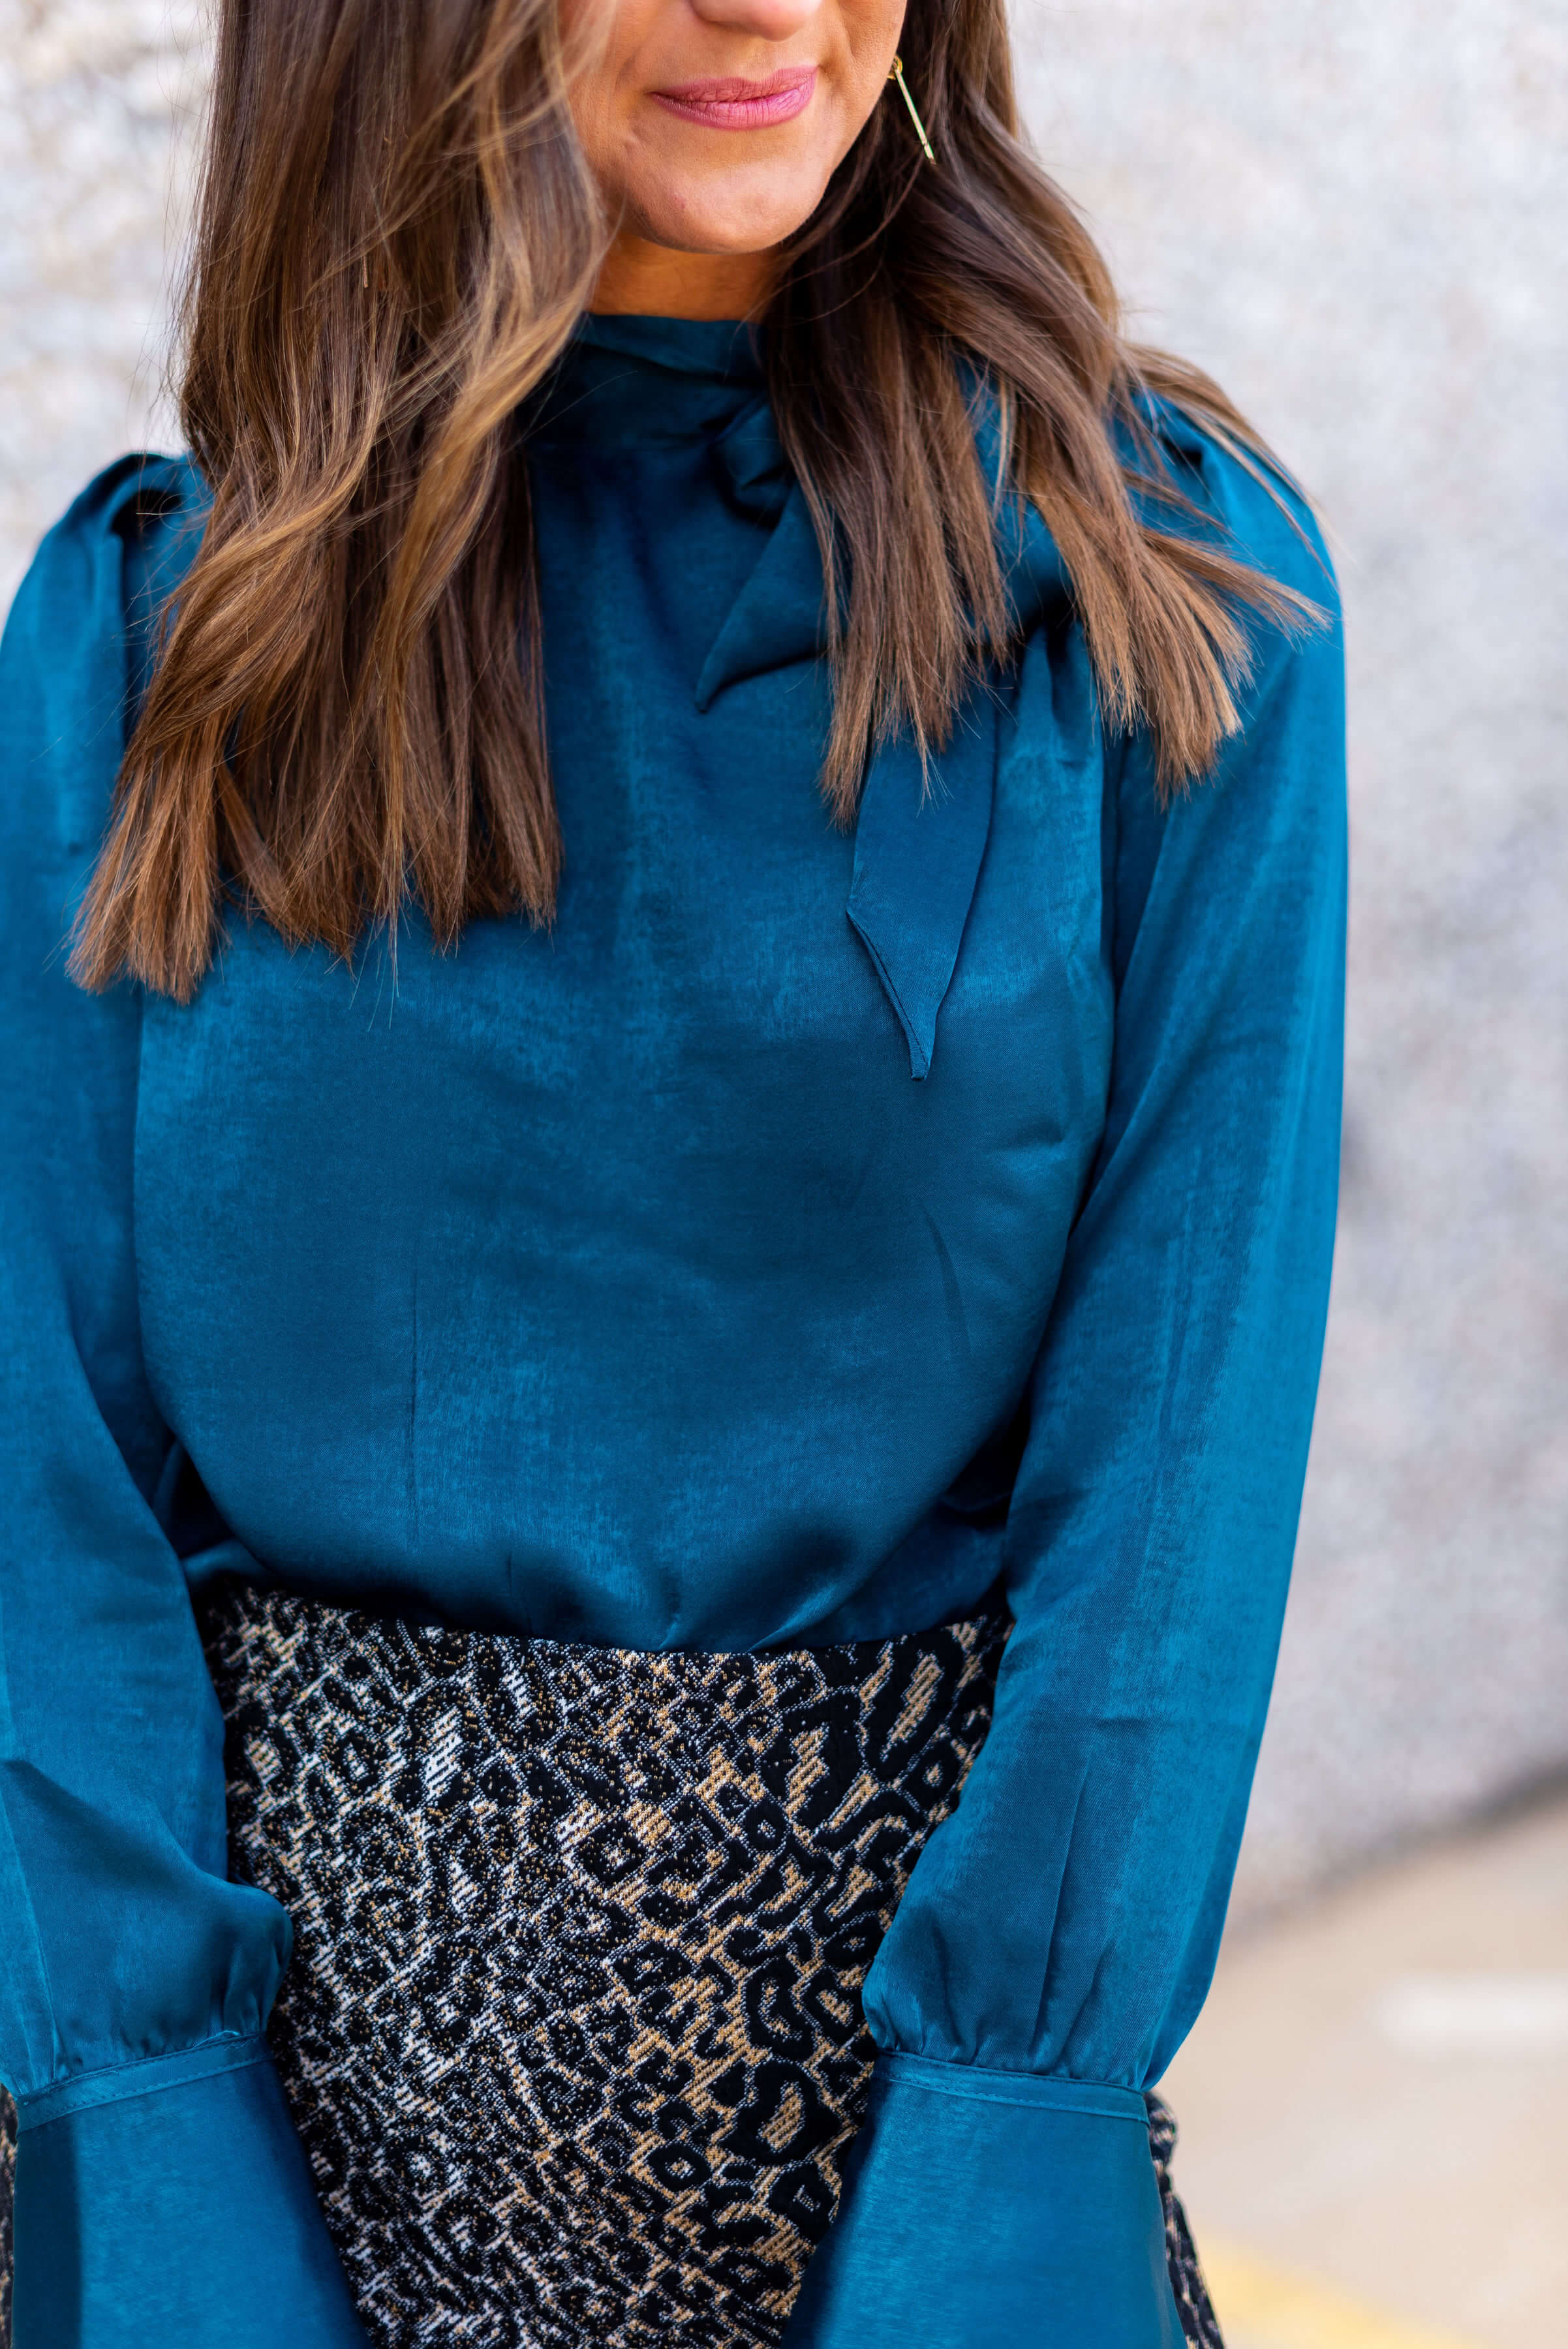 JcPenney Workwear   Teal tie shoulder blouse   Stylish Workwear   Style Your Senses